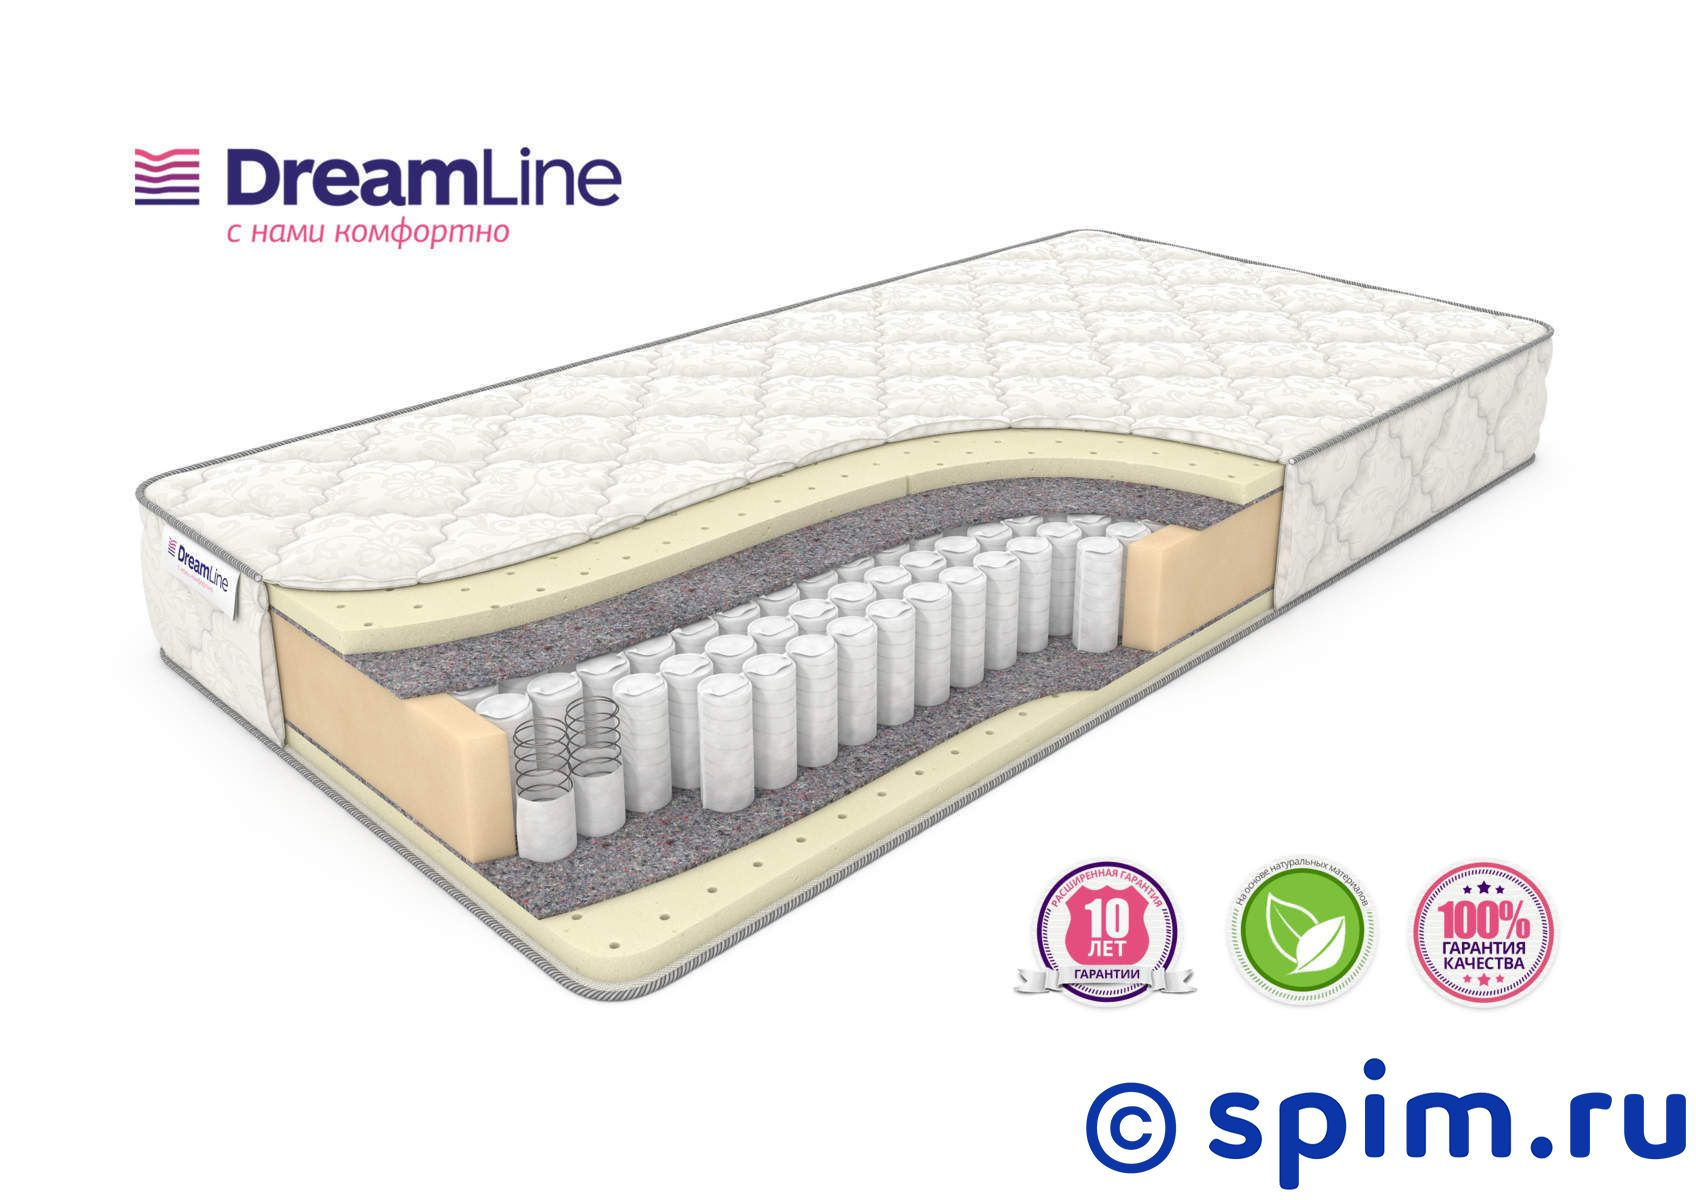 Матрас DreamLine Sleep 2 Tfk 200х200 см